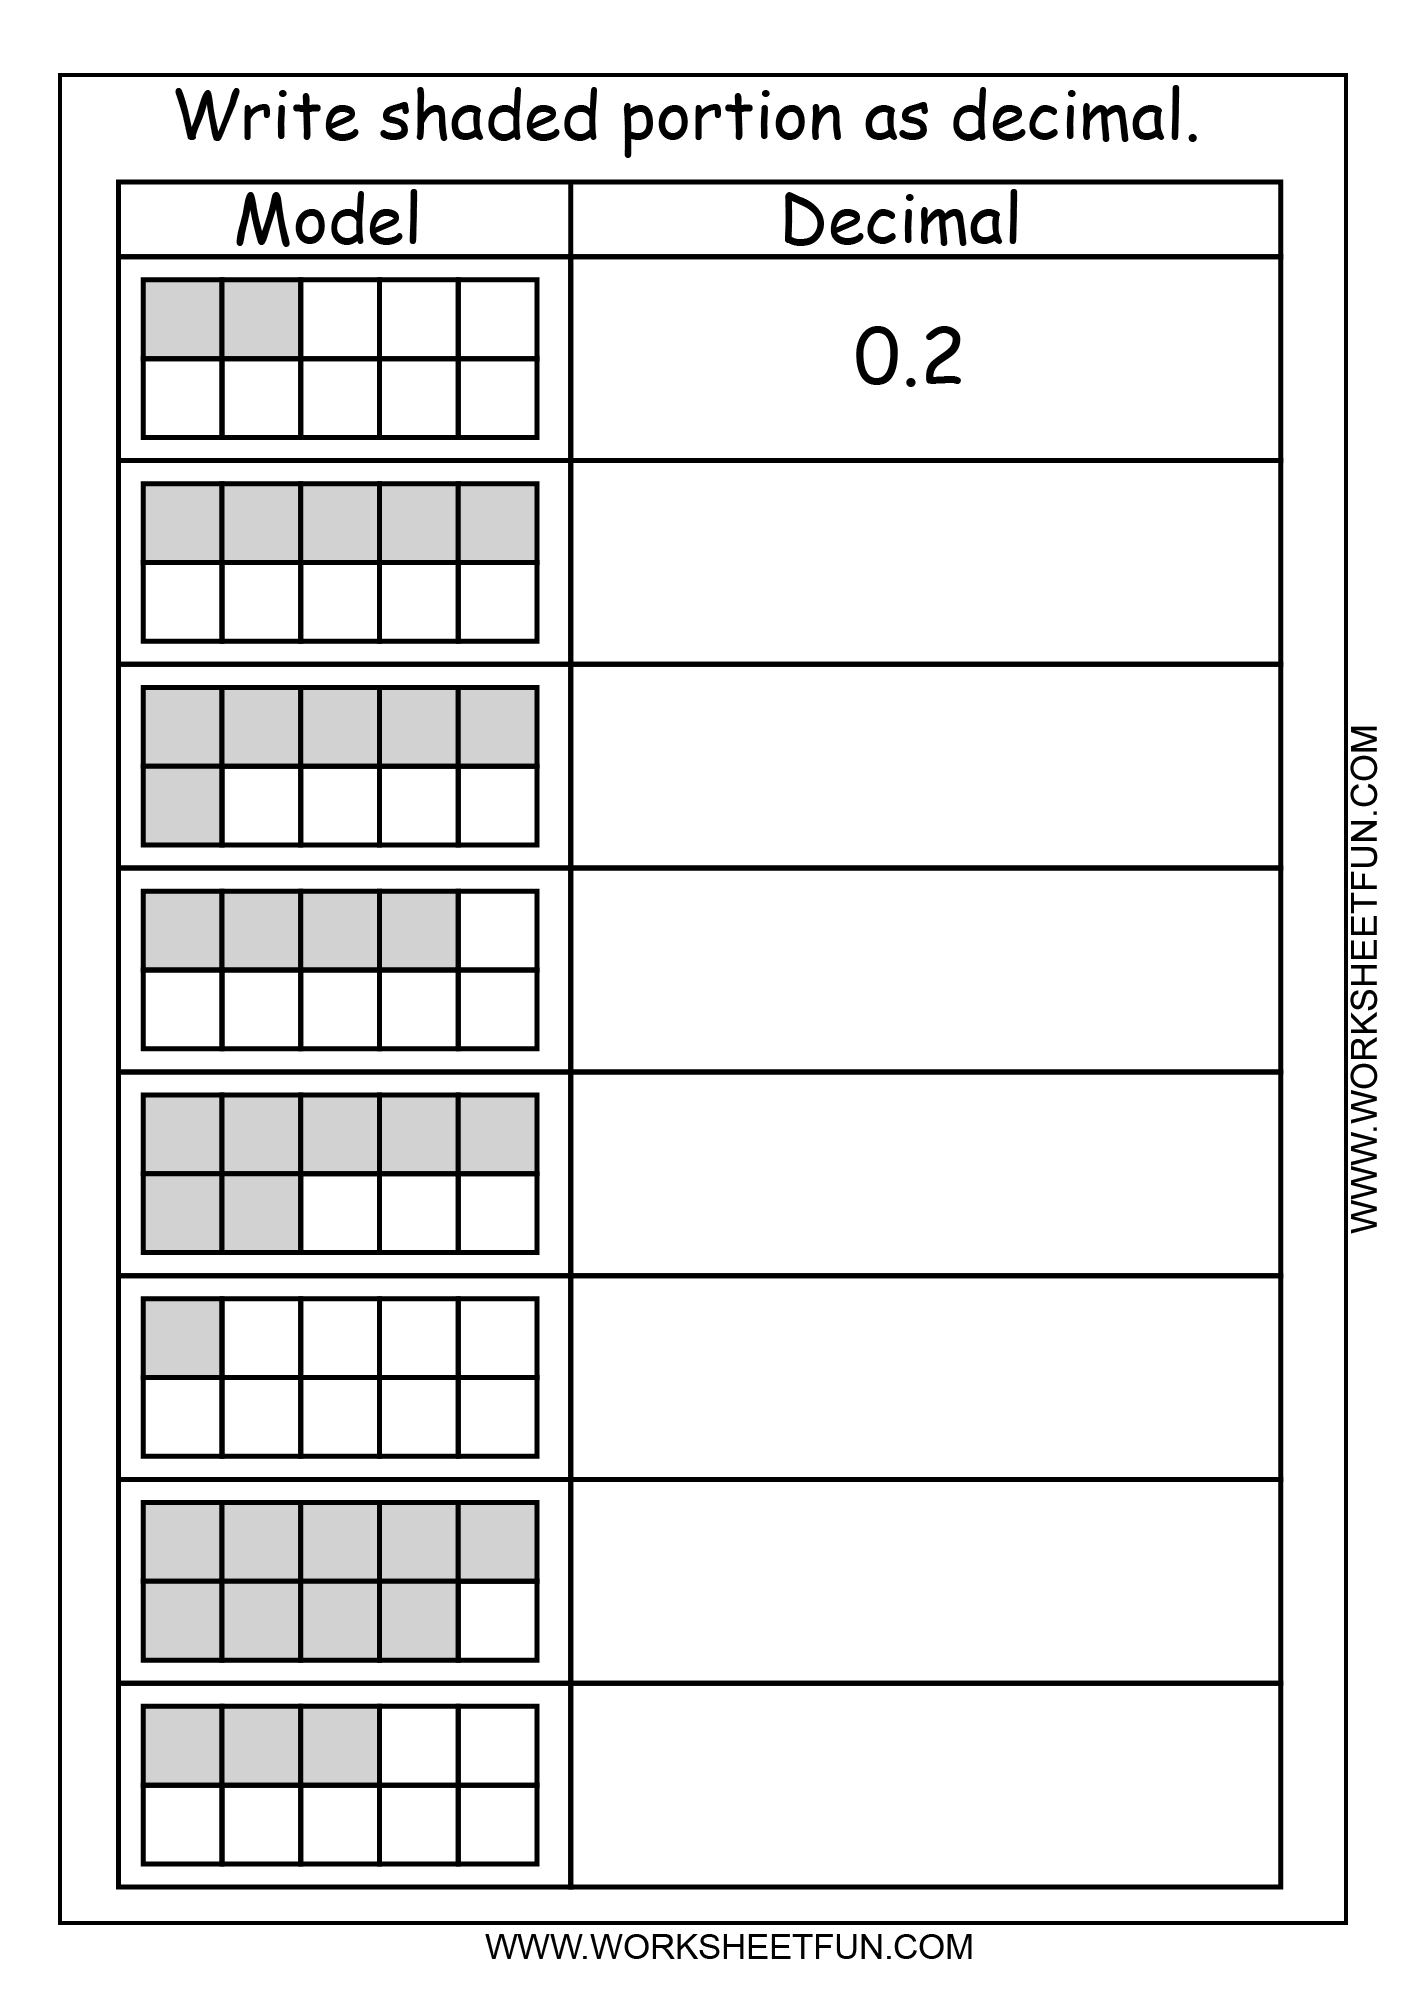 Free Worksheet Fractions To Decimals Worksheet 10 best ideas about decimal worksheets on pinterest models adding decimals and all kinds of